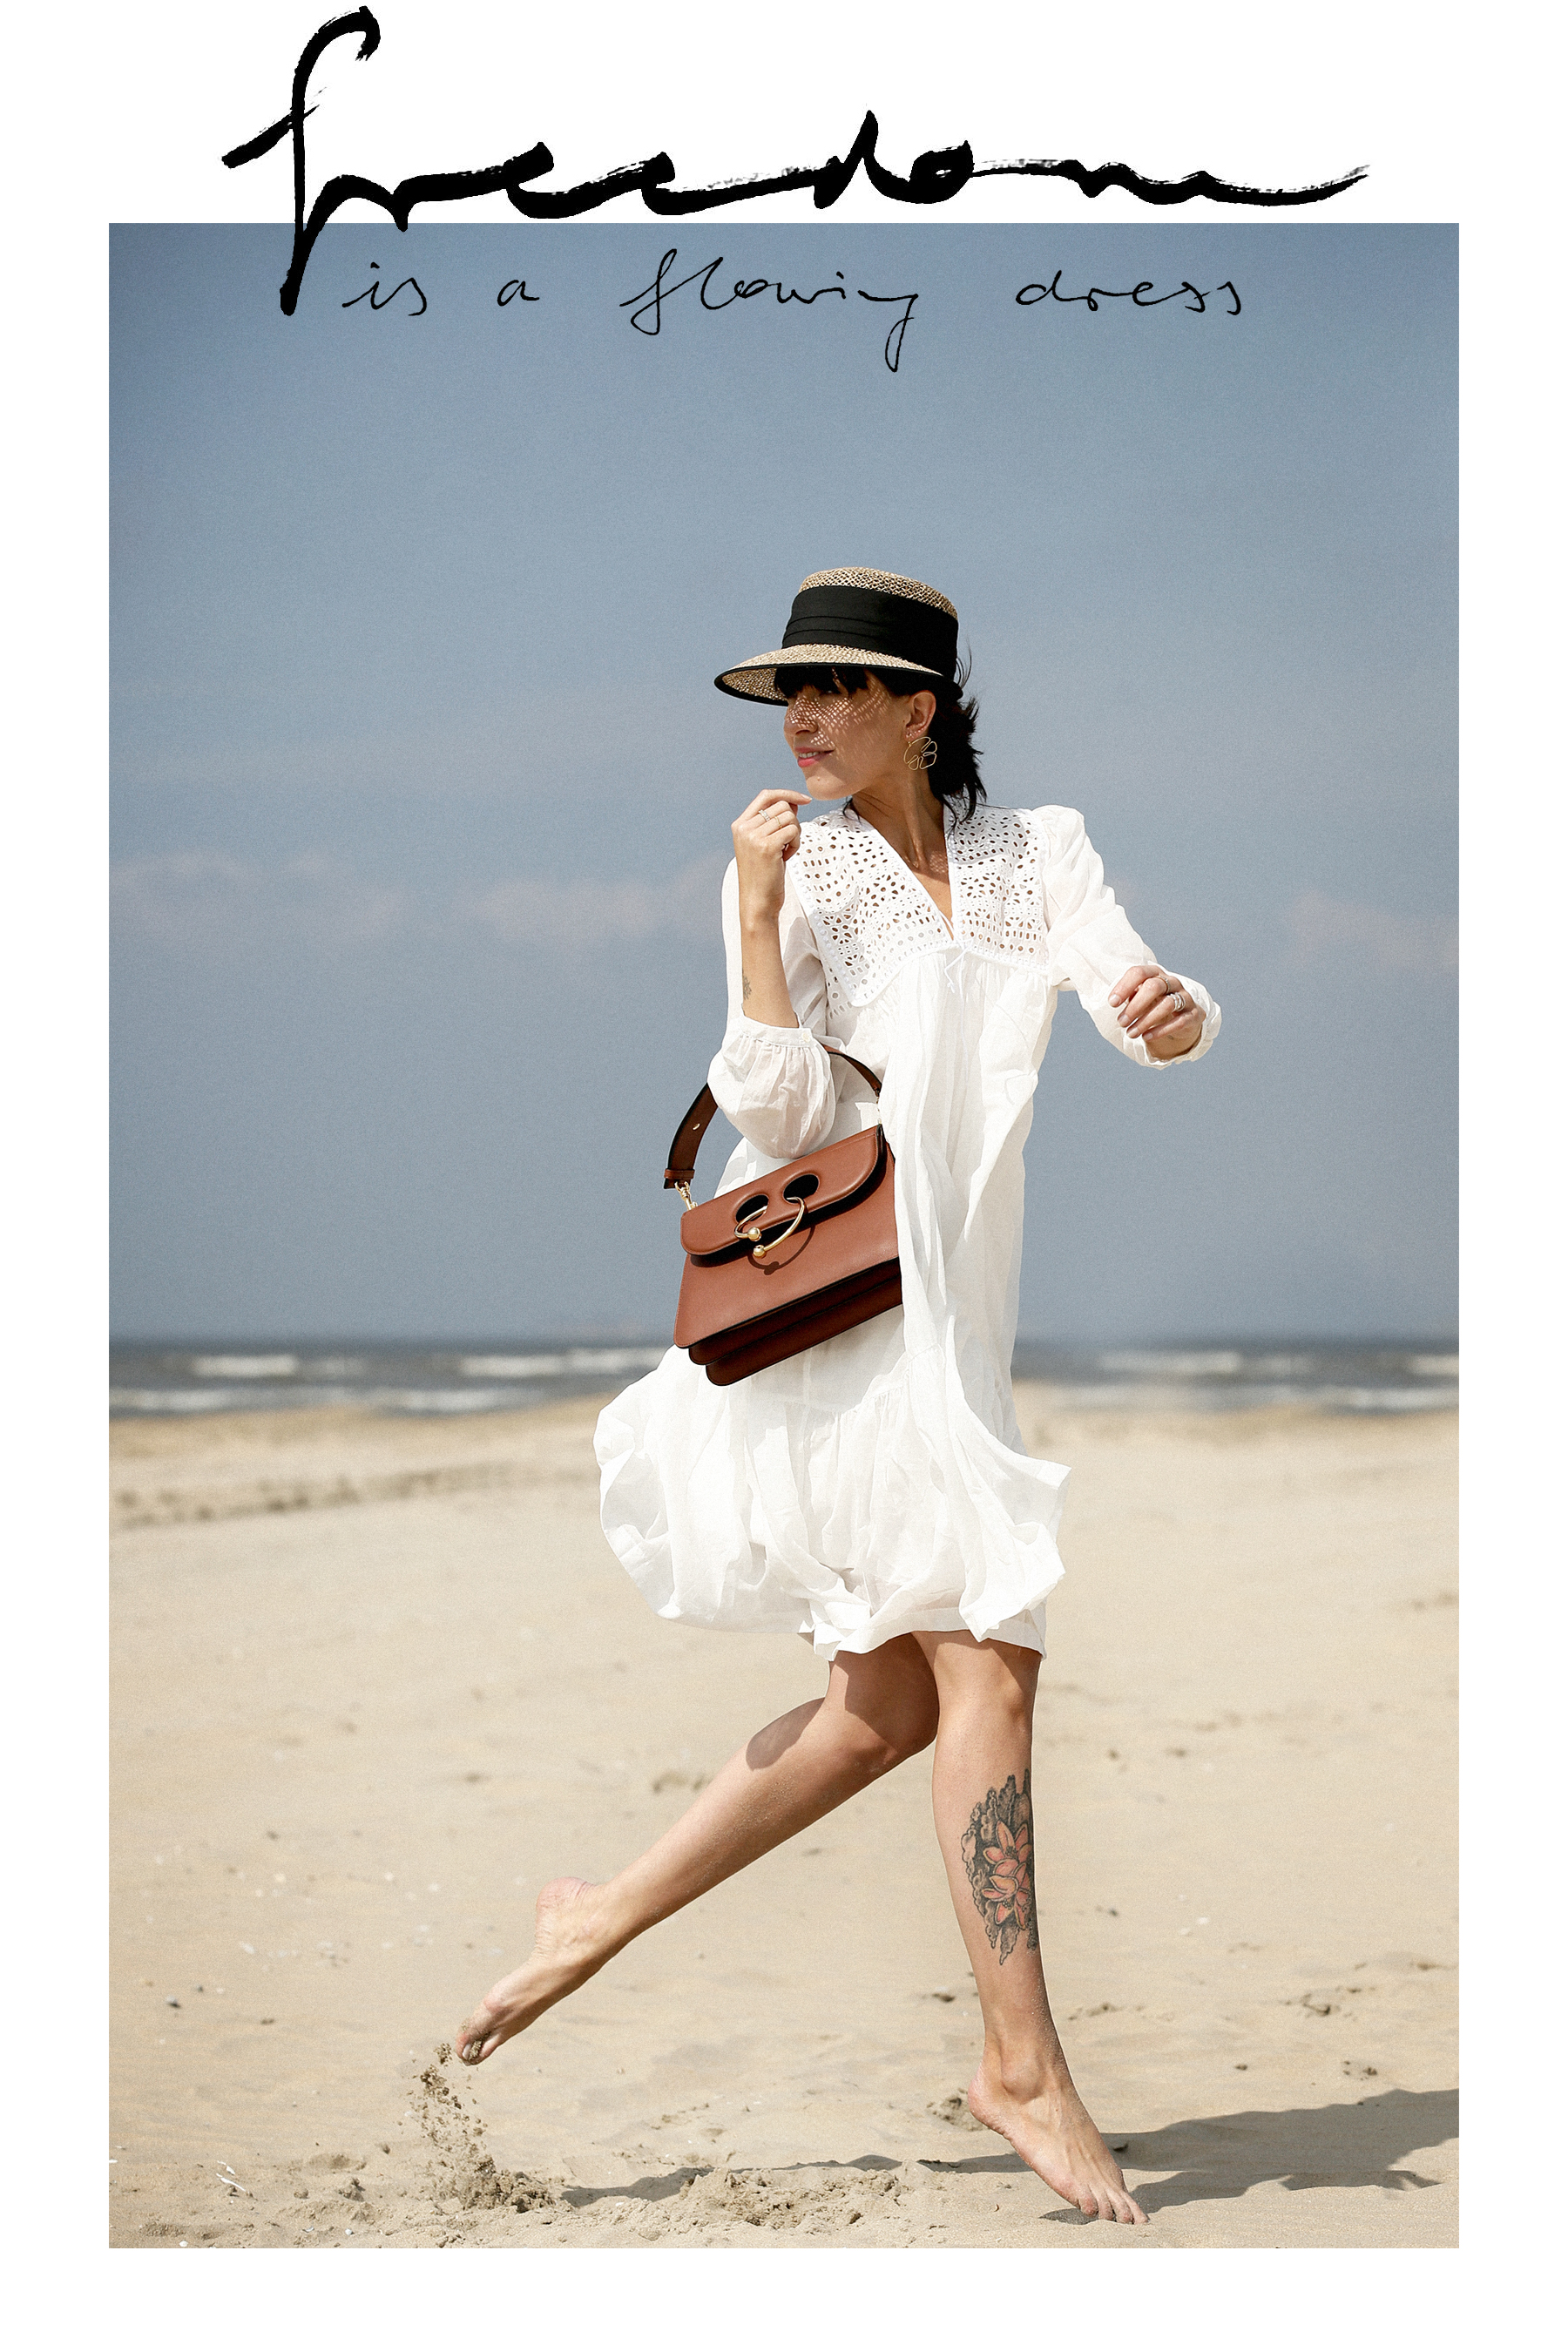 breuninger beach white dress closed j.w.anderson pierce bag straw hat summertime sunshine photography editorial vogue fashionblogger düsseldorf cats&dogs blog ricarda schernus modeblogger 8